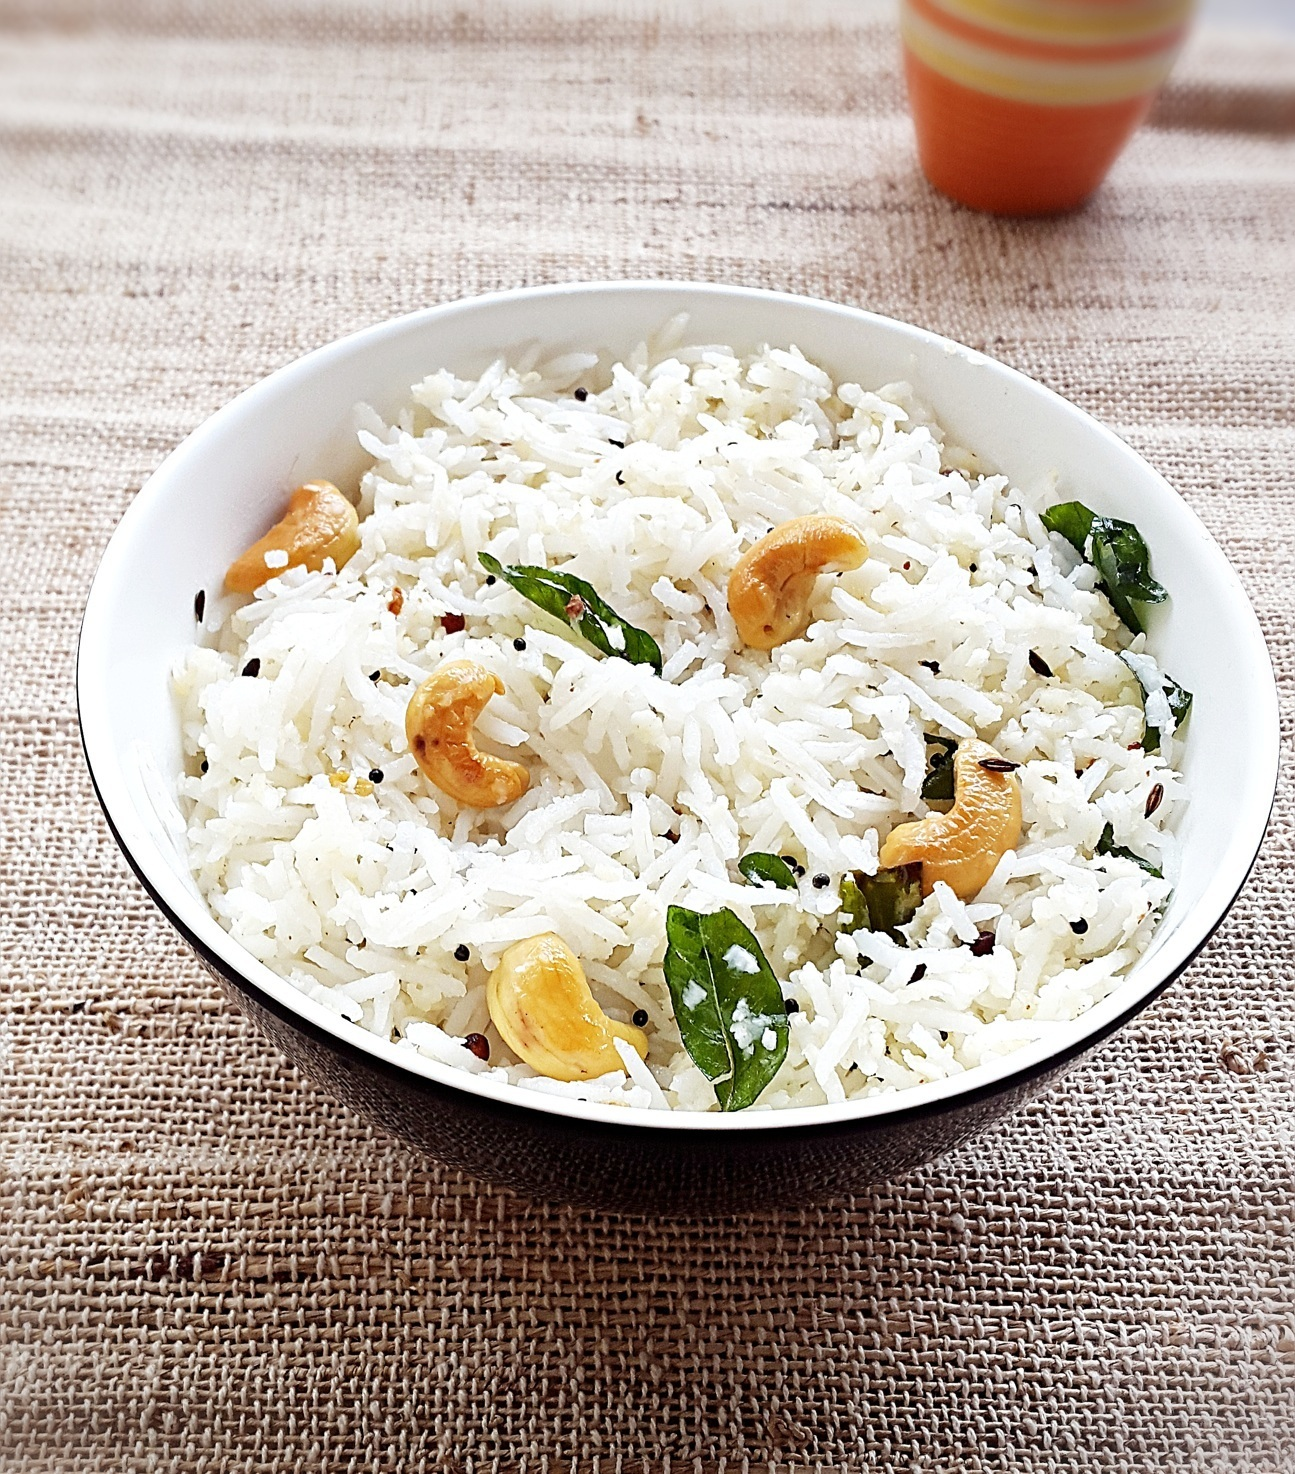 Coconut rice recipe – How to make easy Indian coconut rice